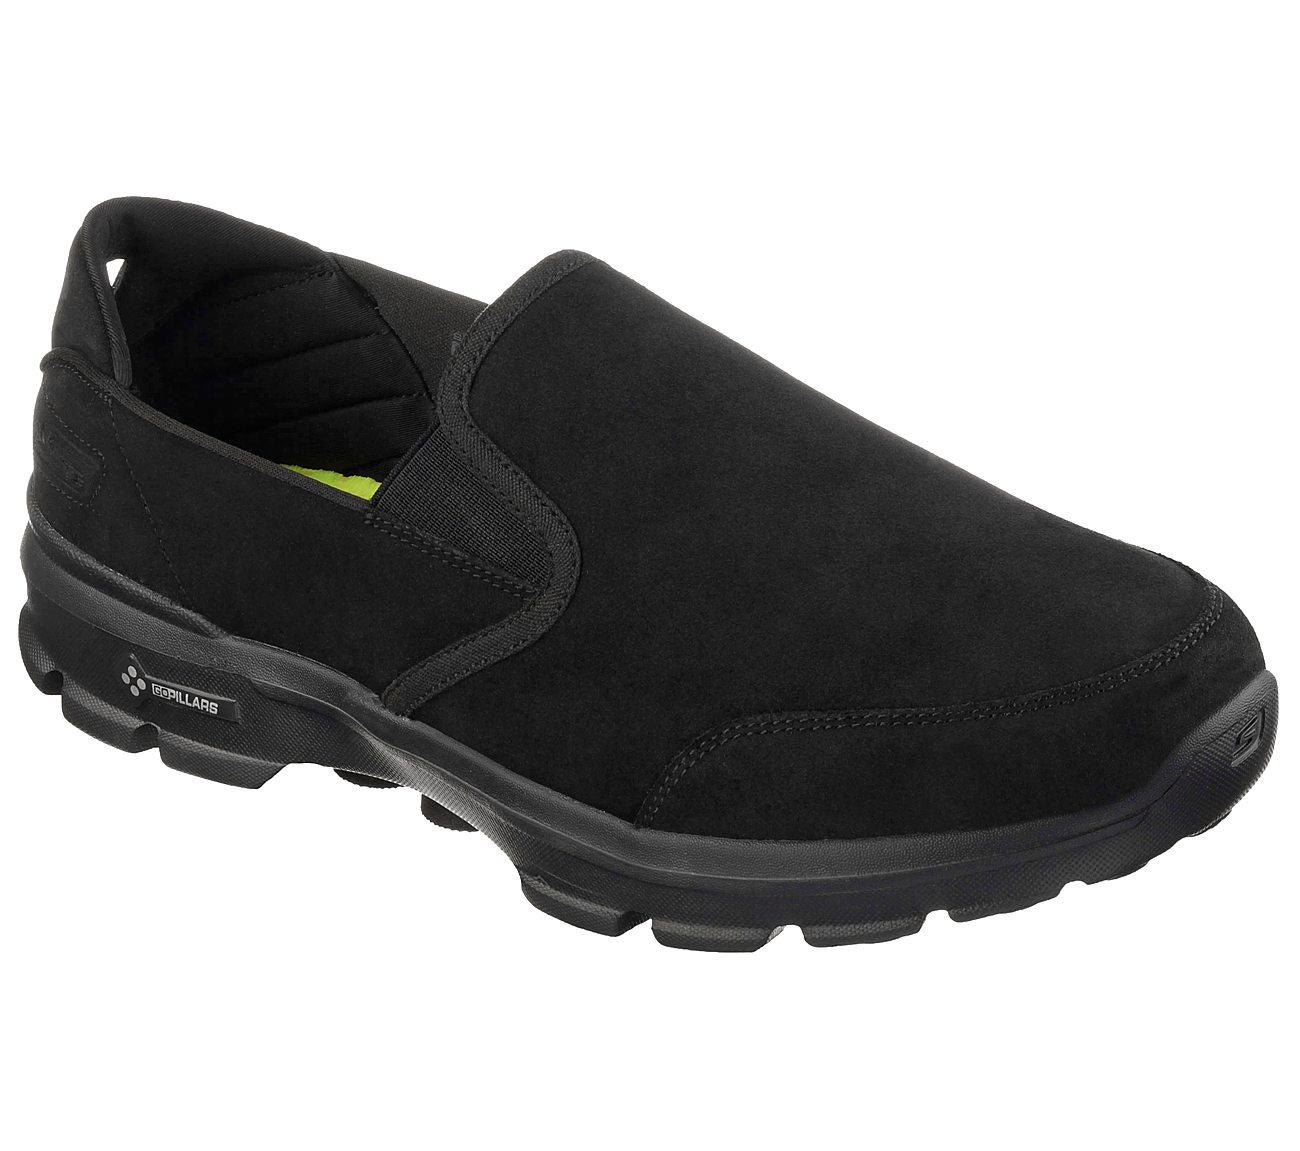 Buy SKECHERS Skechers GOwalk 3 - Task